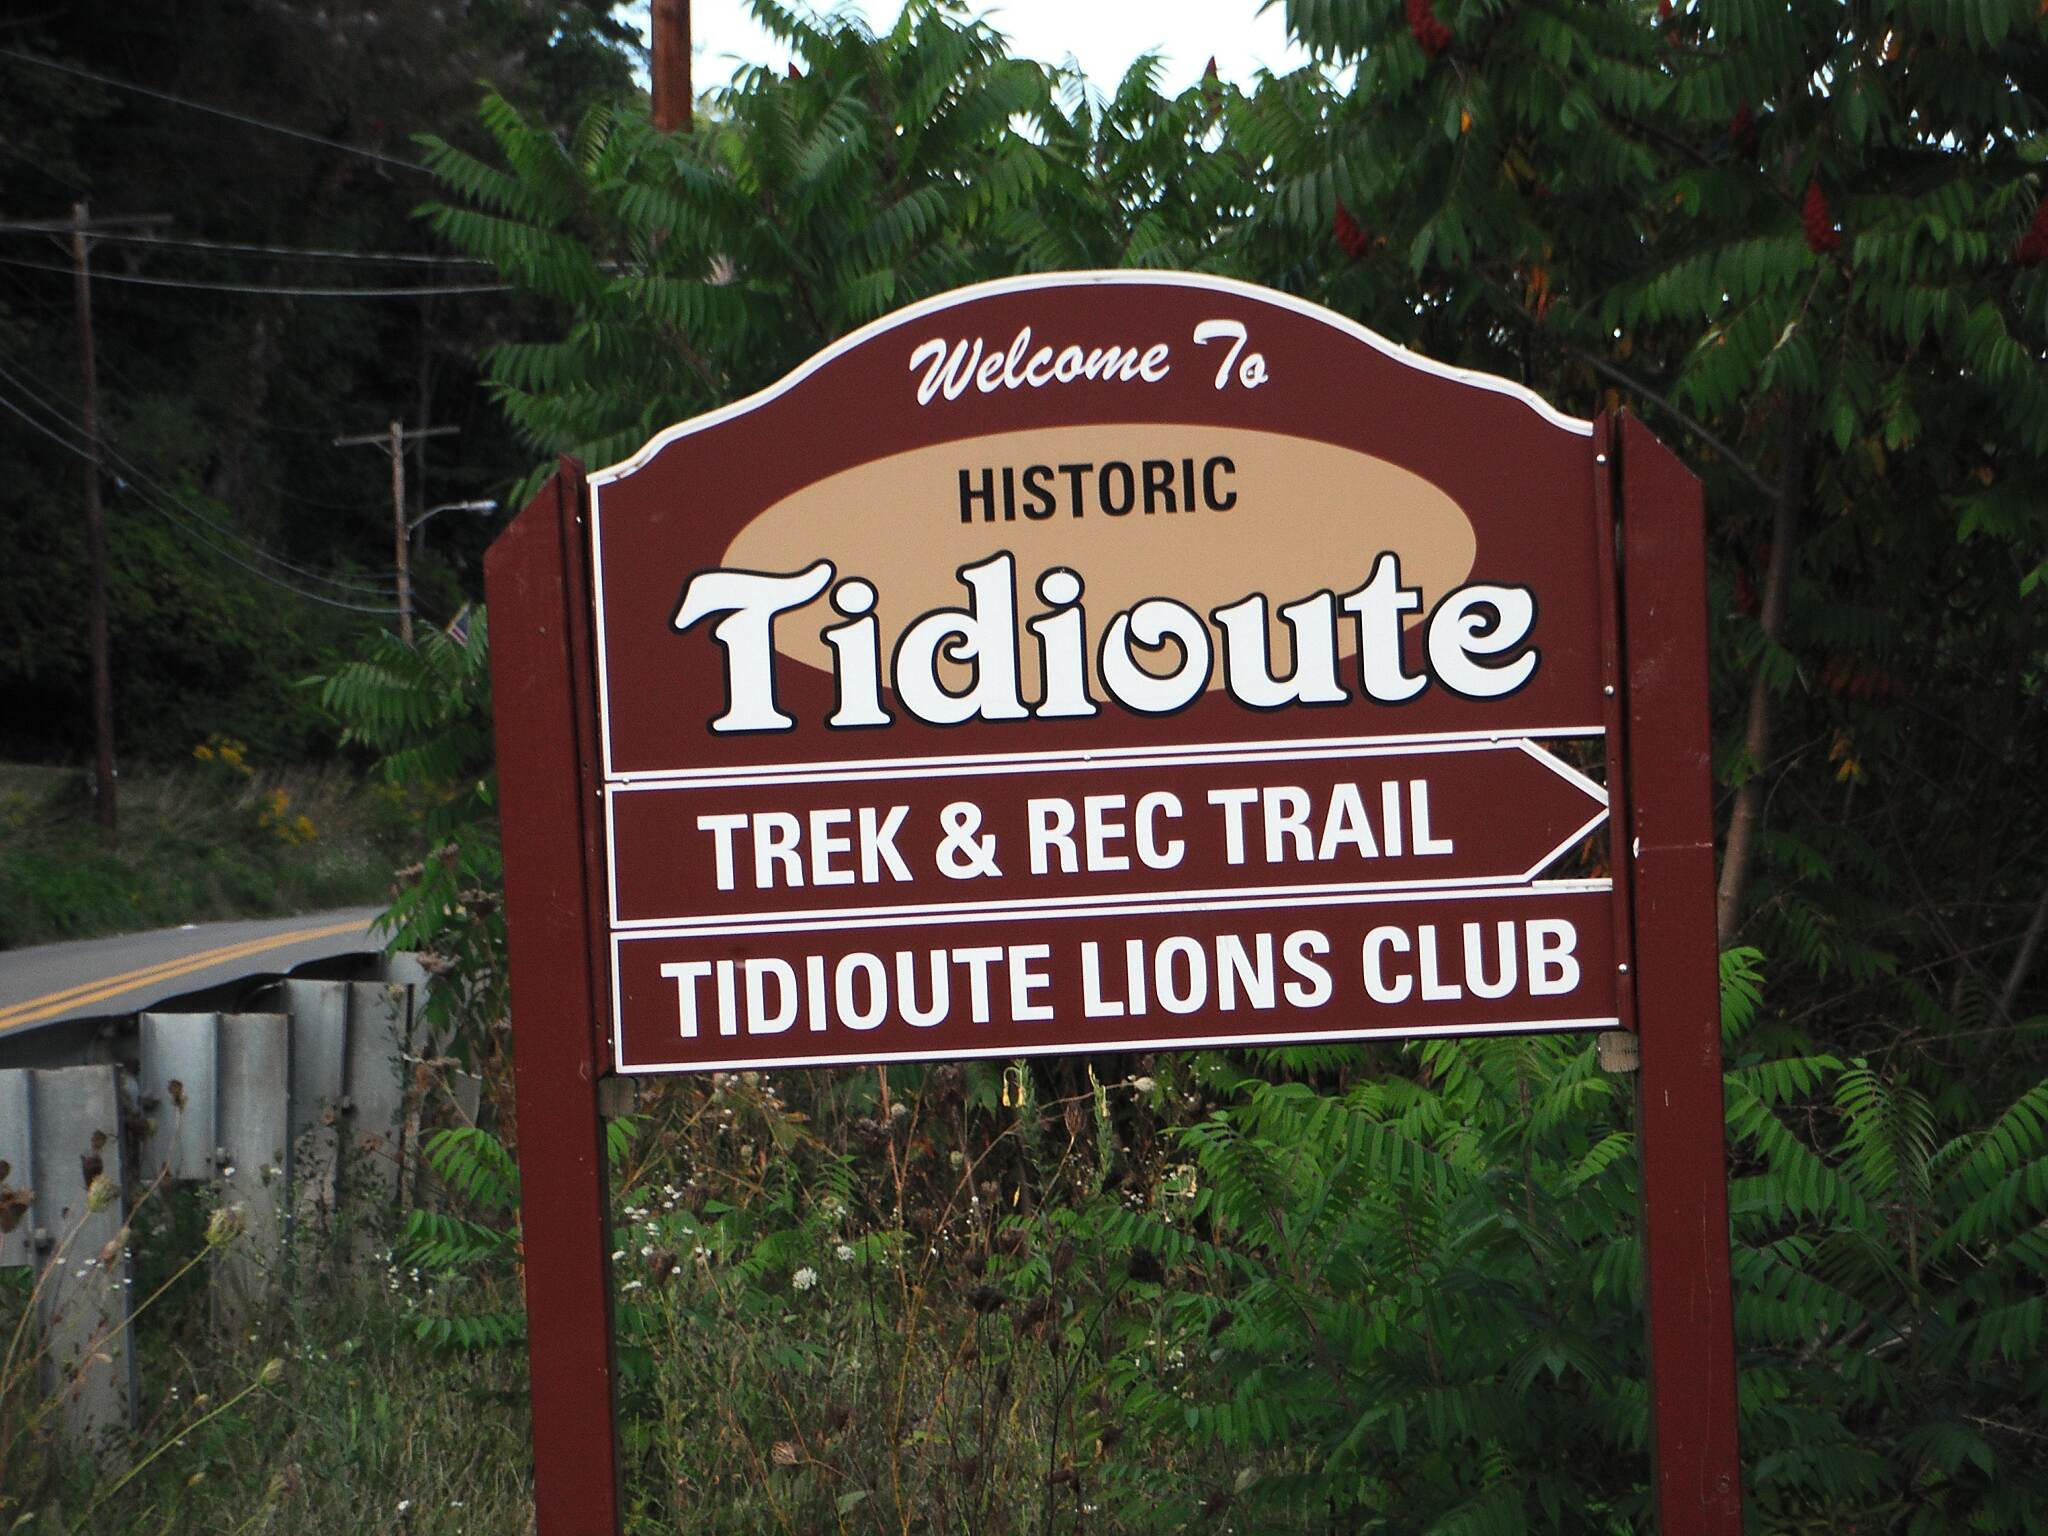 Allegheny National Forest - Tidioute Riverside RecTrek Trail  Tidioute Trek and Rec Trail Entrance sign at start point in Tidioute.